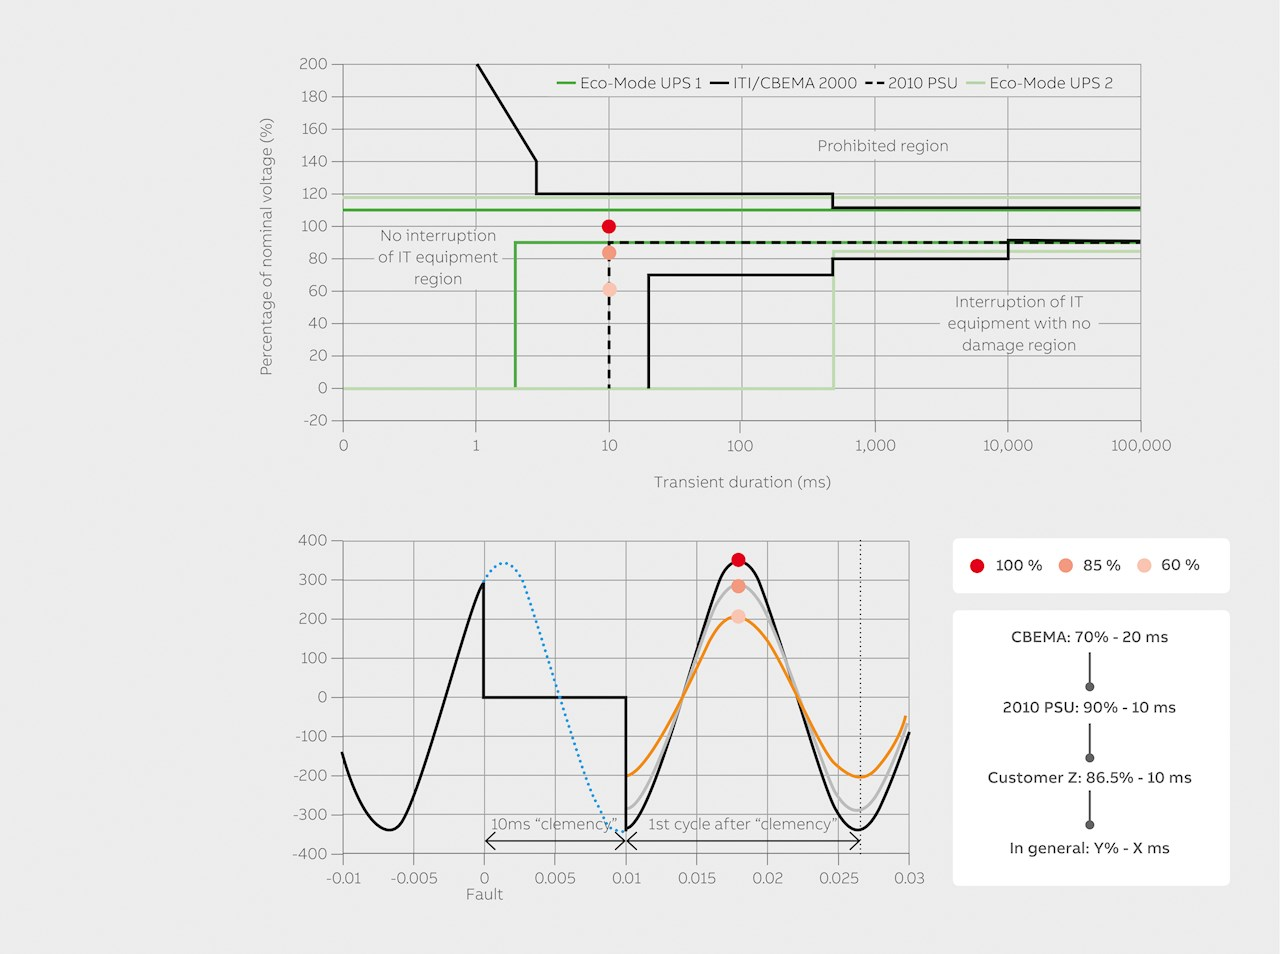 05 Performance measurement takes into account VW and the pass-fail criteria. For the two economy mode UPSs: Eco Mode UPS 1 fulfills the requirements while Eco Mode UPS 2 does not. The 2010 PSU is a tighter requirement than the ITI-CBEMA 2000.